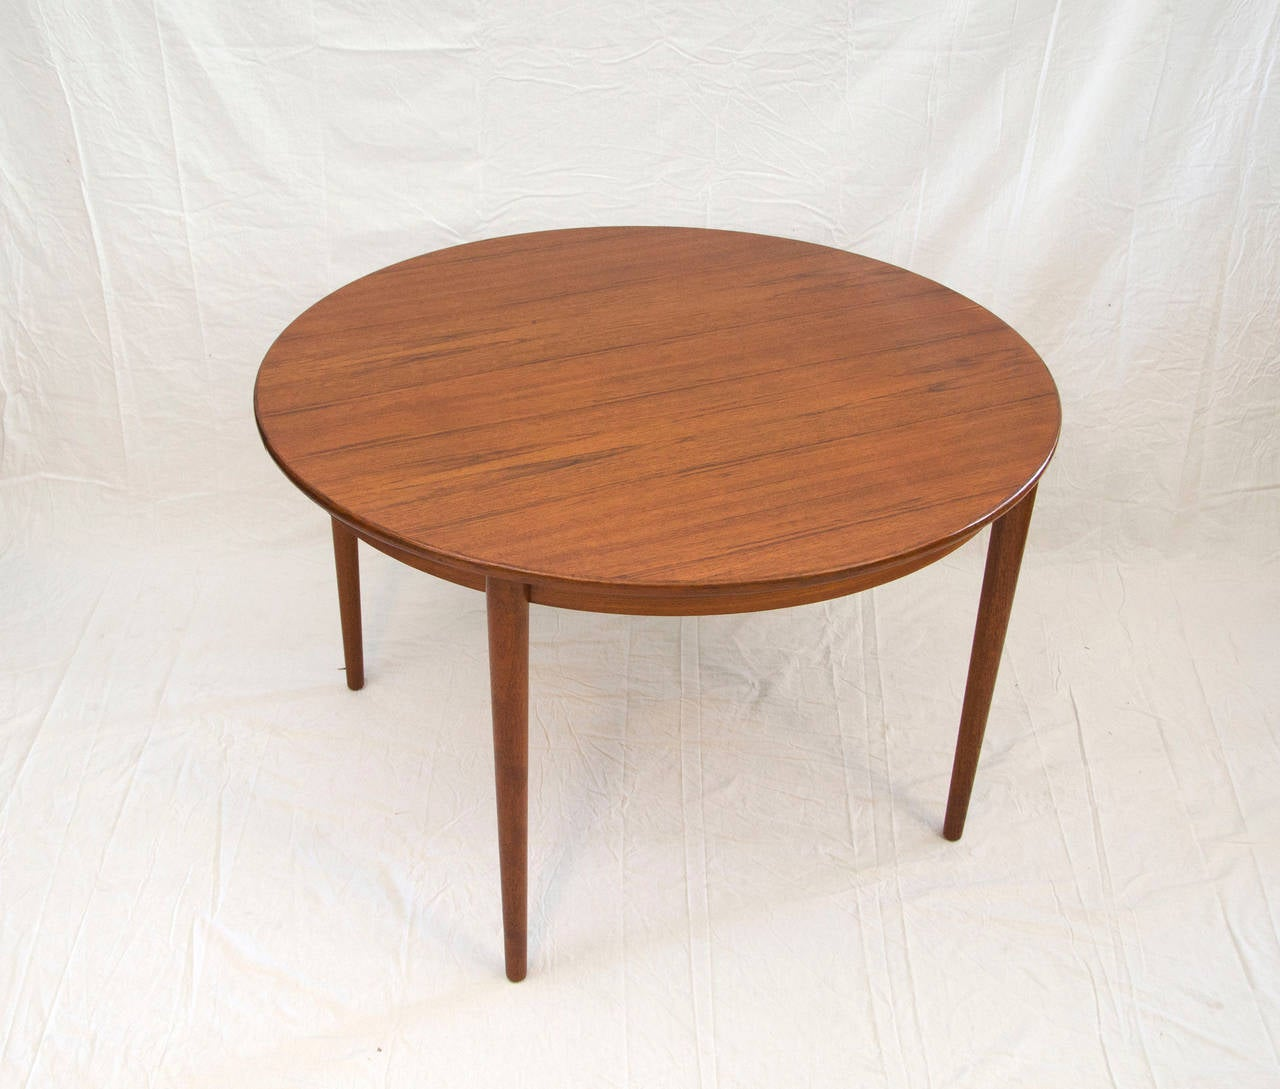 Danish Round Teak Dining Table With Two Leaves By Moreddi 2